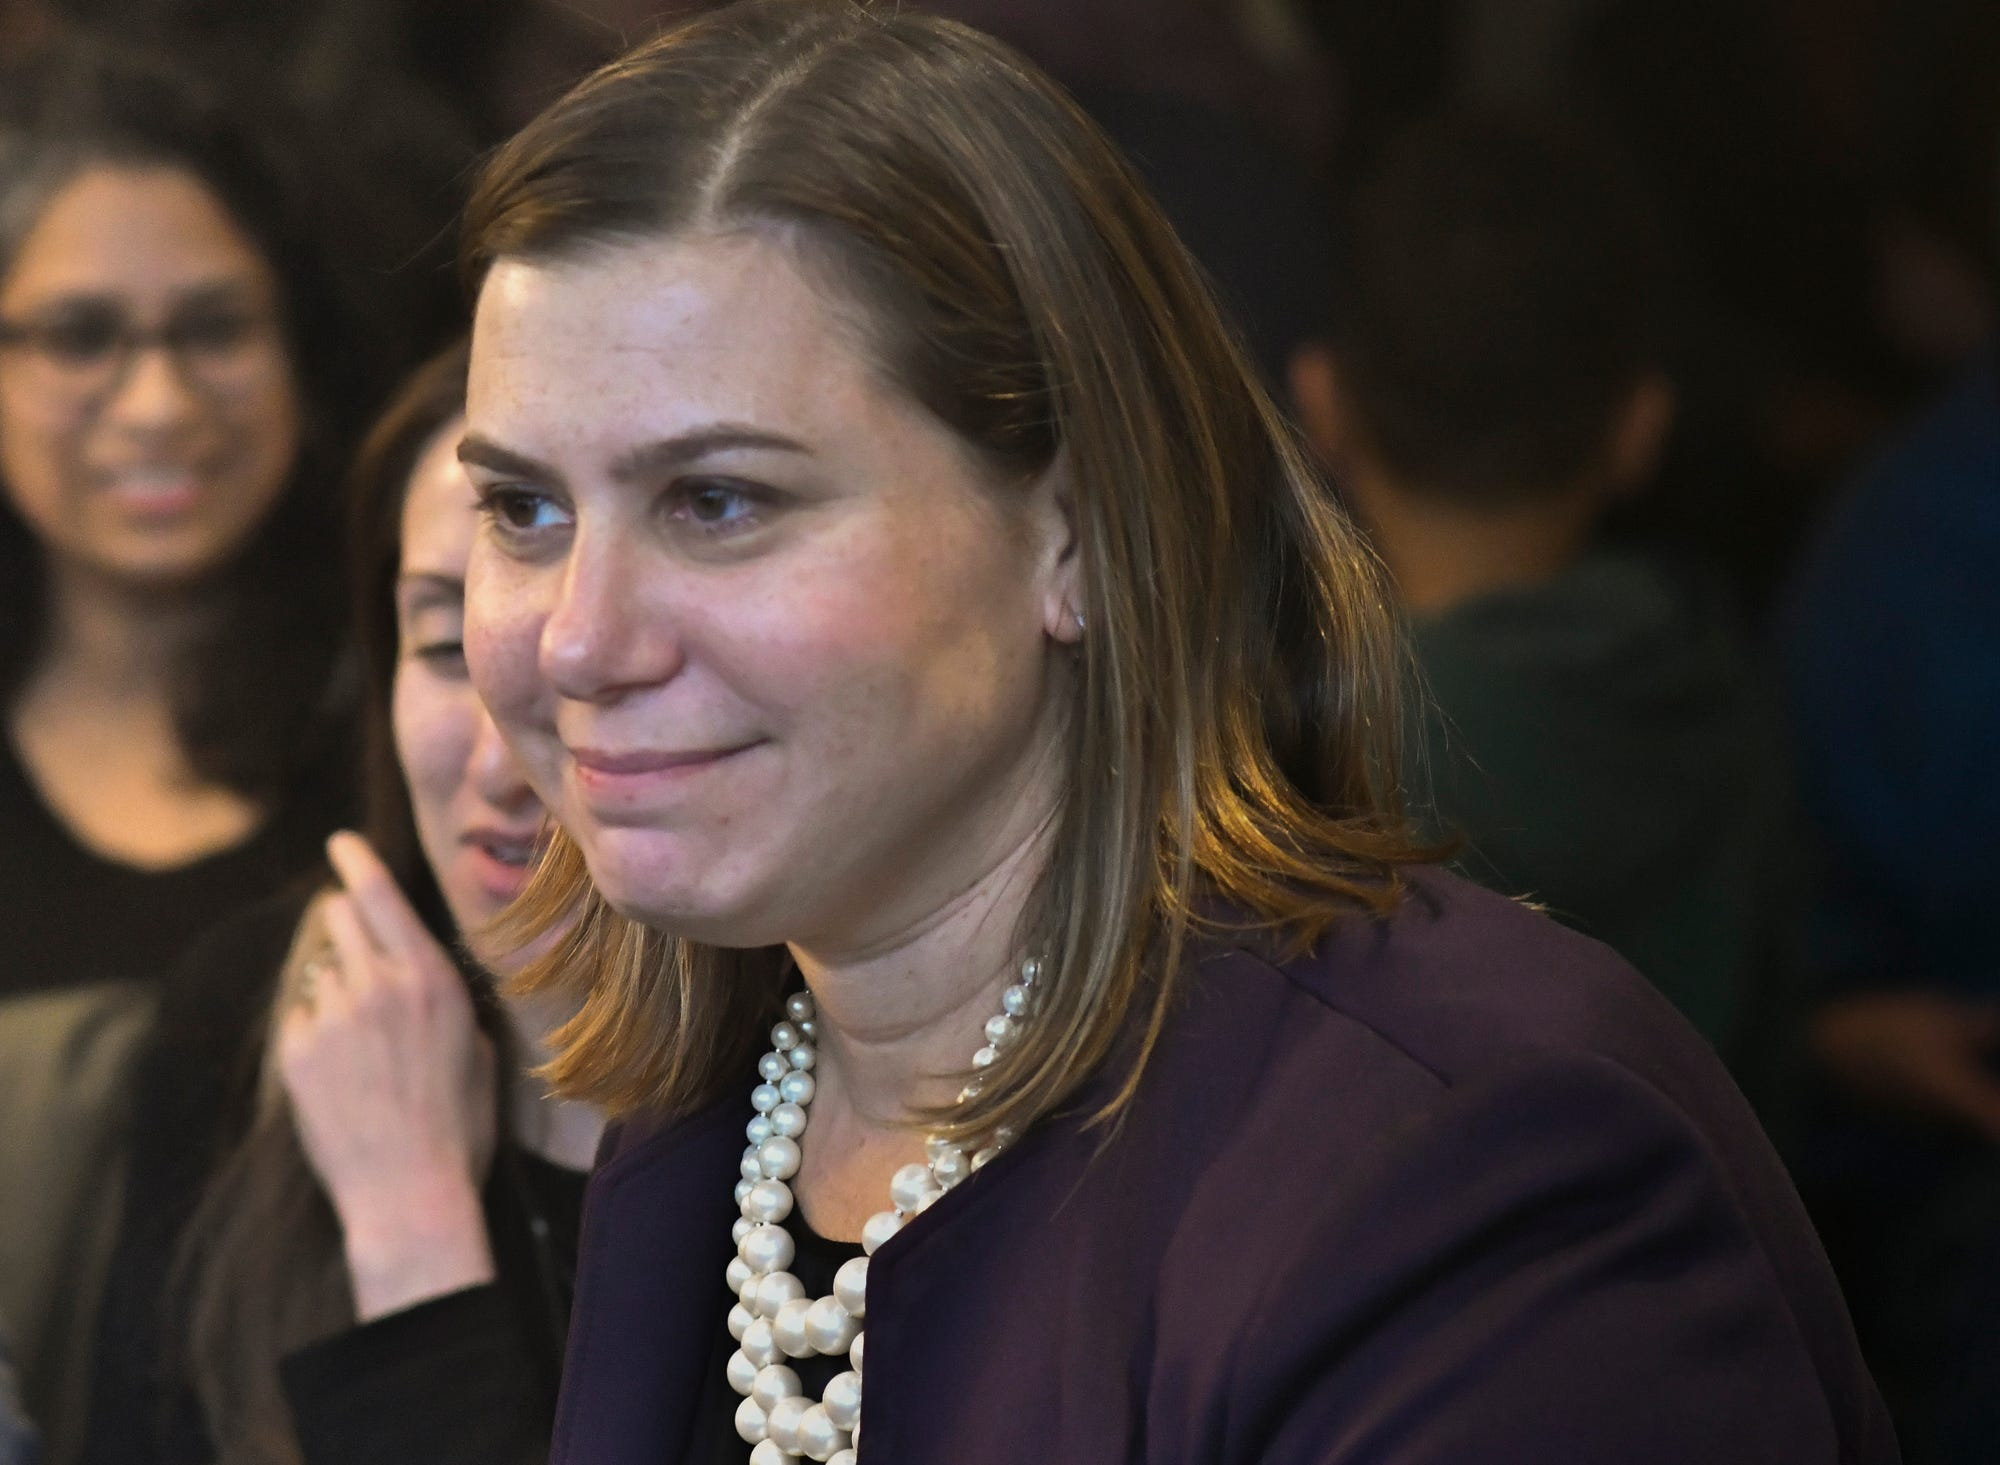 Michigan's 8th Congressional District Congresswoman-elect Elissa Slotkin meets with constituents Thursday, Nov. 8, 2018, at Strange Matter Coffee Co. in Lansing, Michigan.